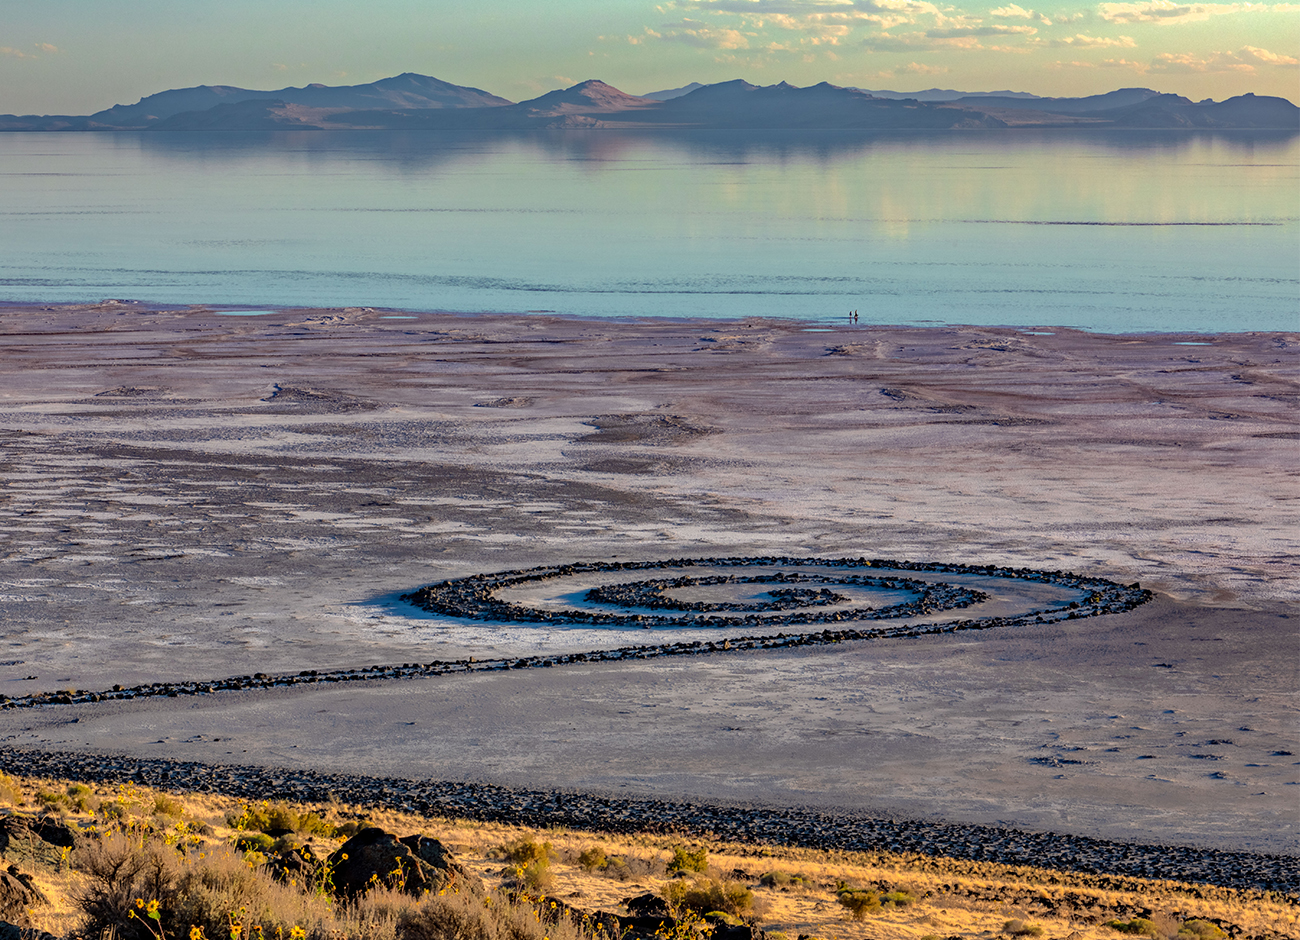 the Great Salt Lake at dusk with the Spiral Jetty